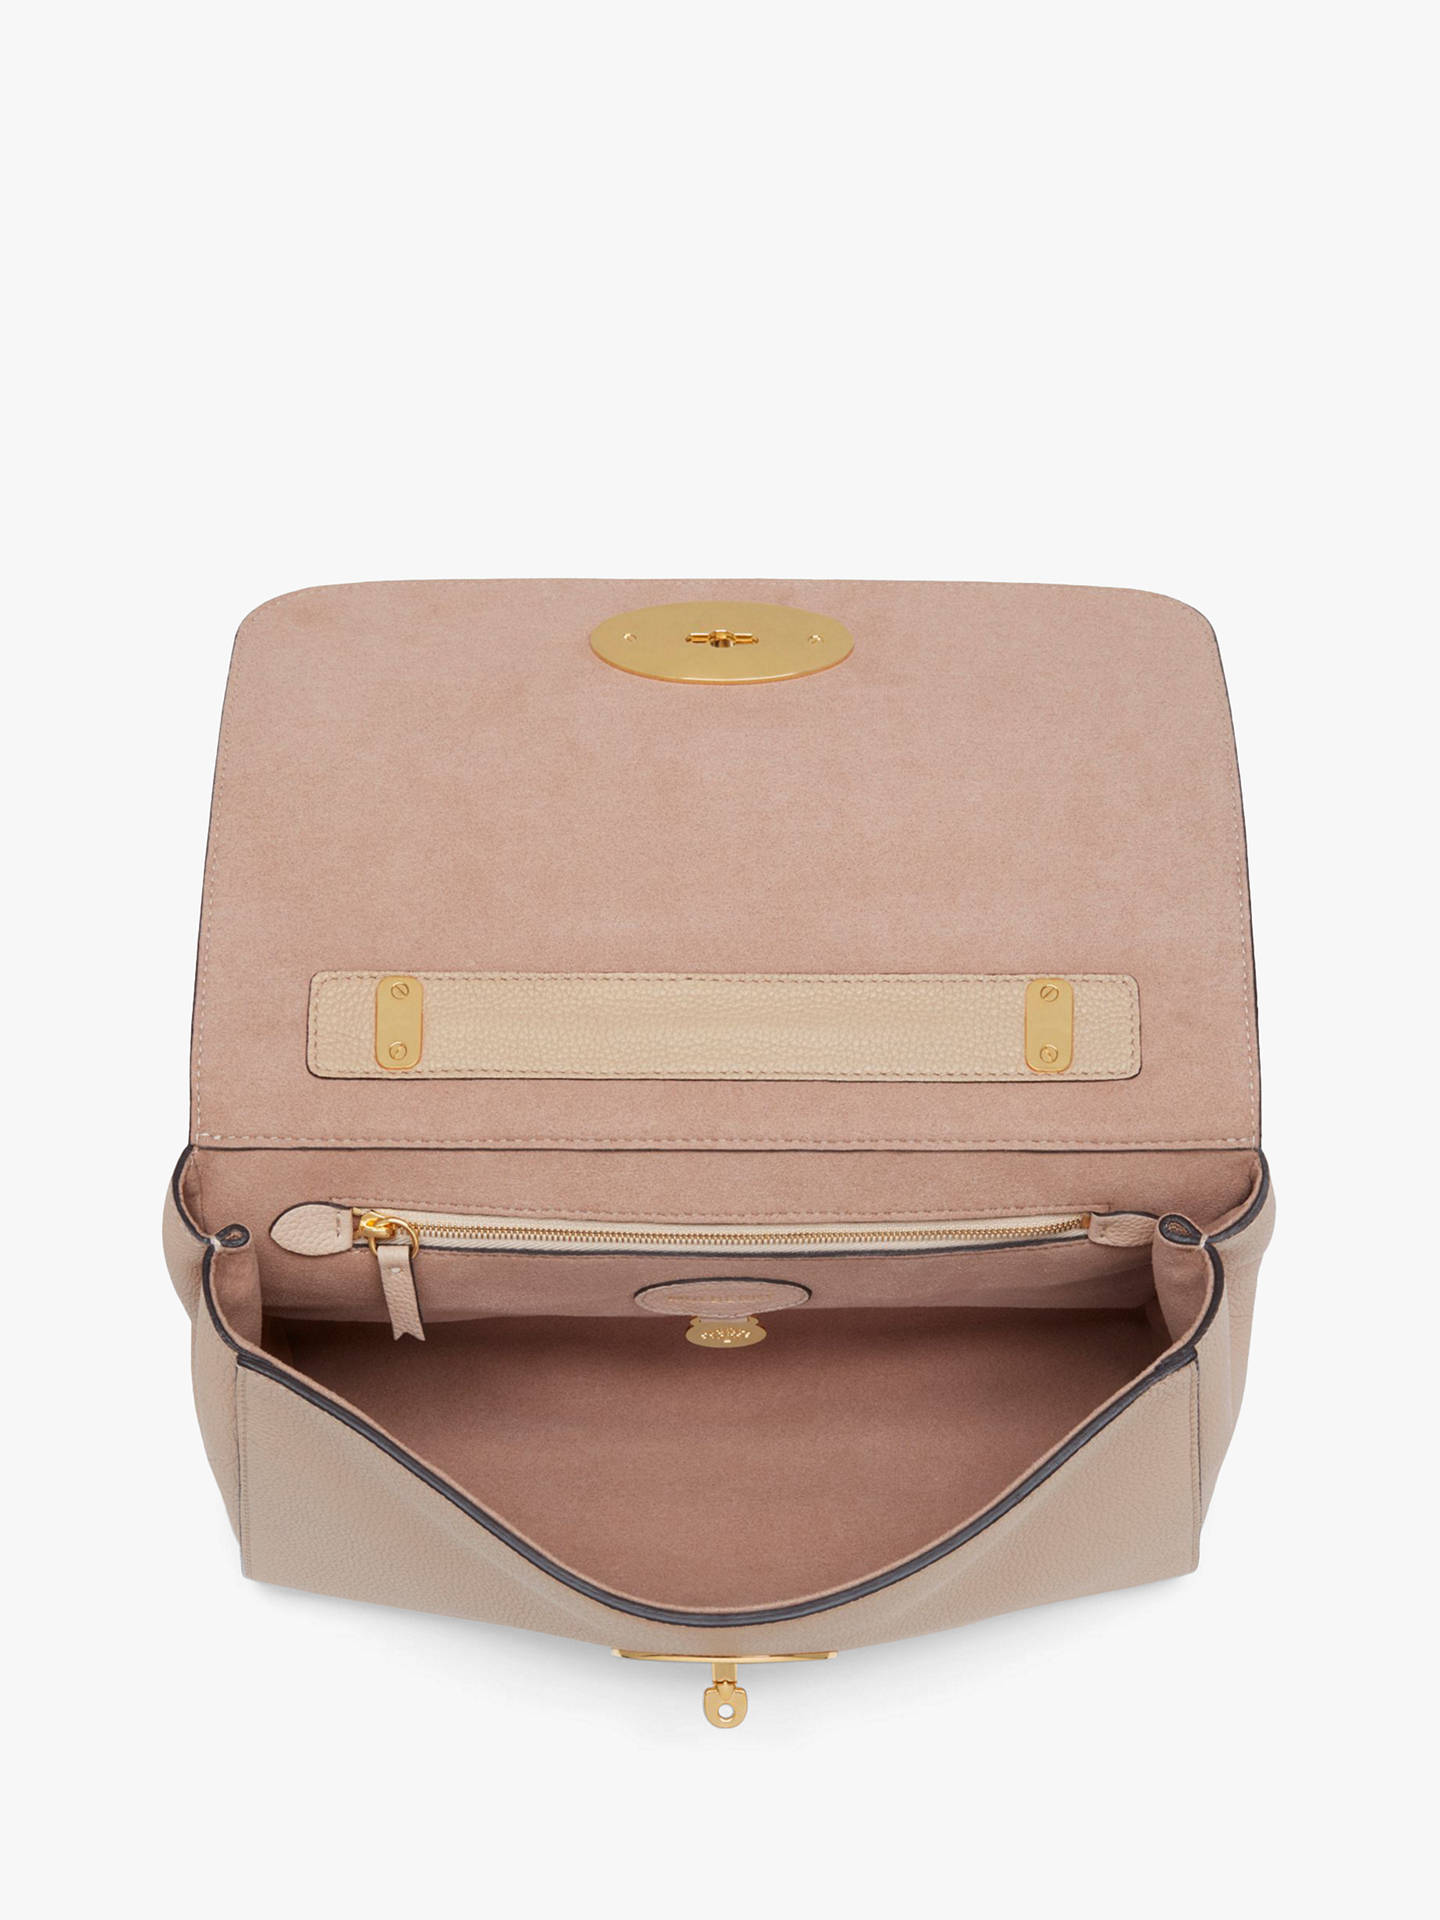 4b9200b2a82 ... BuyMulberry Medium Lily Classic Grain Leather Shoulder Bag, Rosewater  Online at johnlewis.com ...